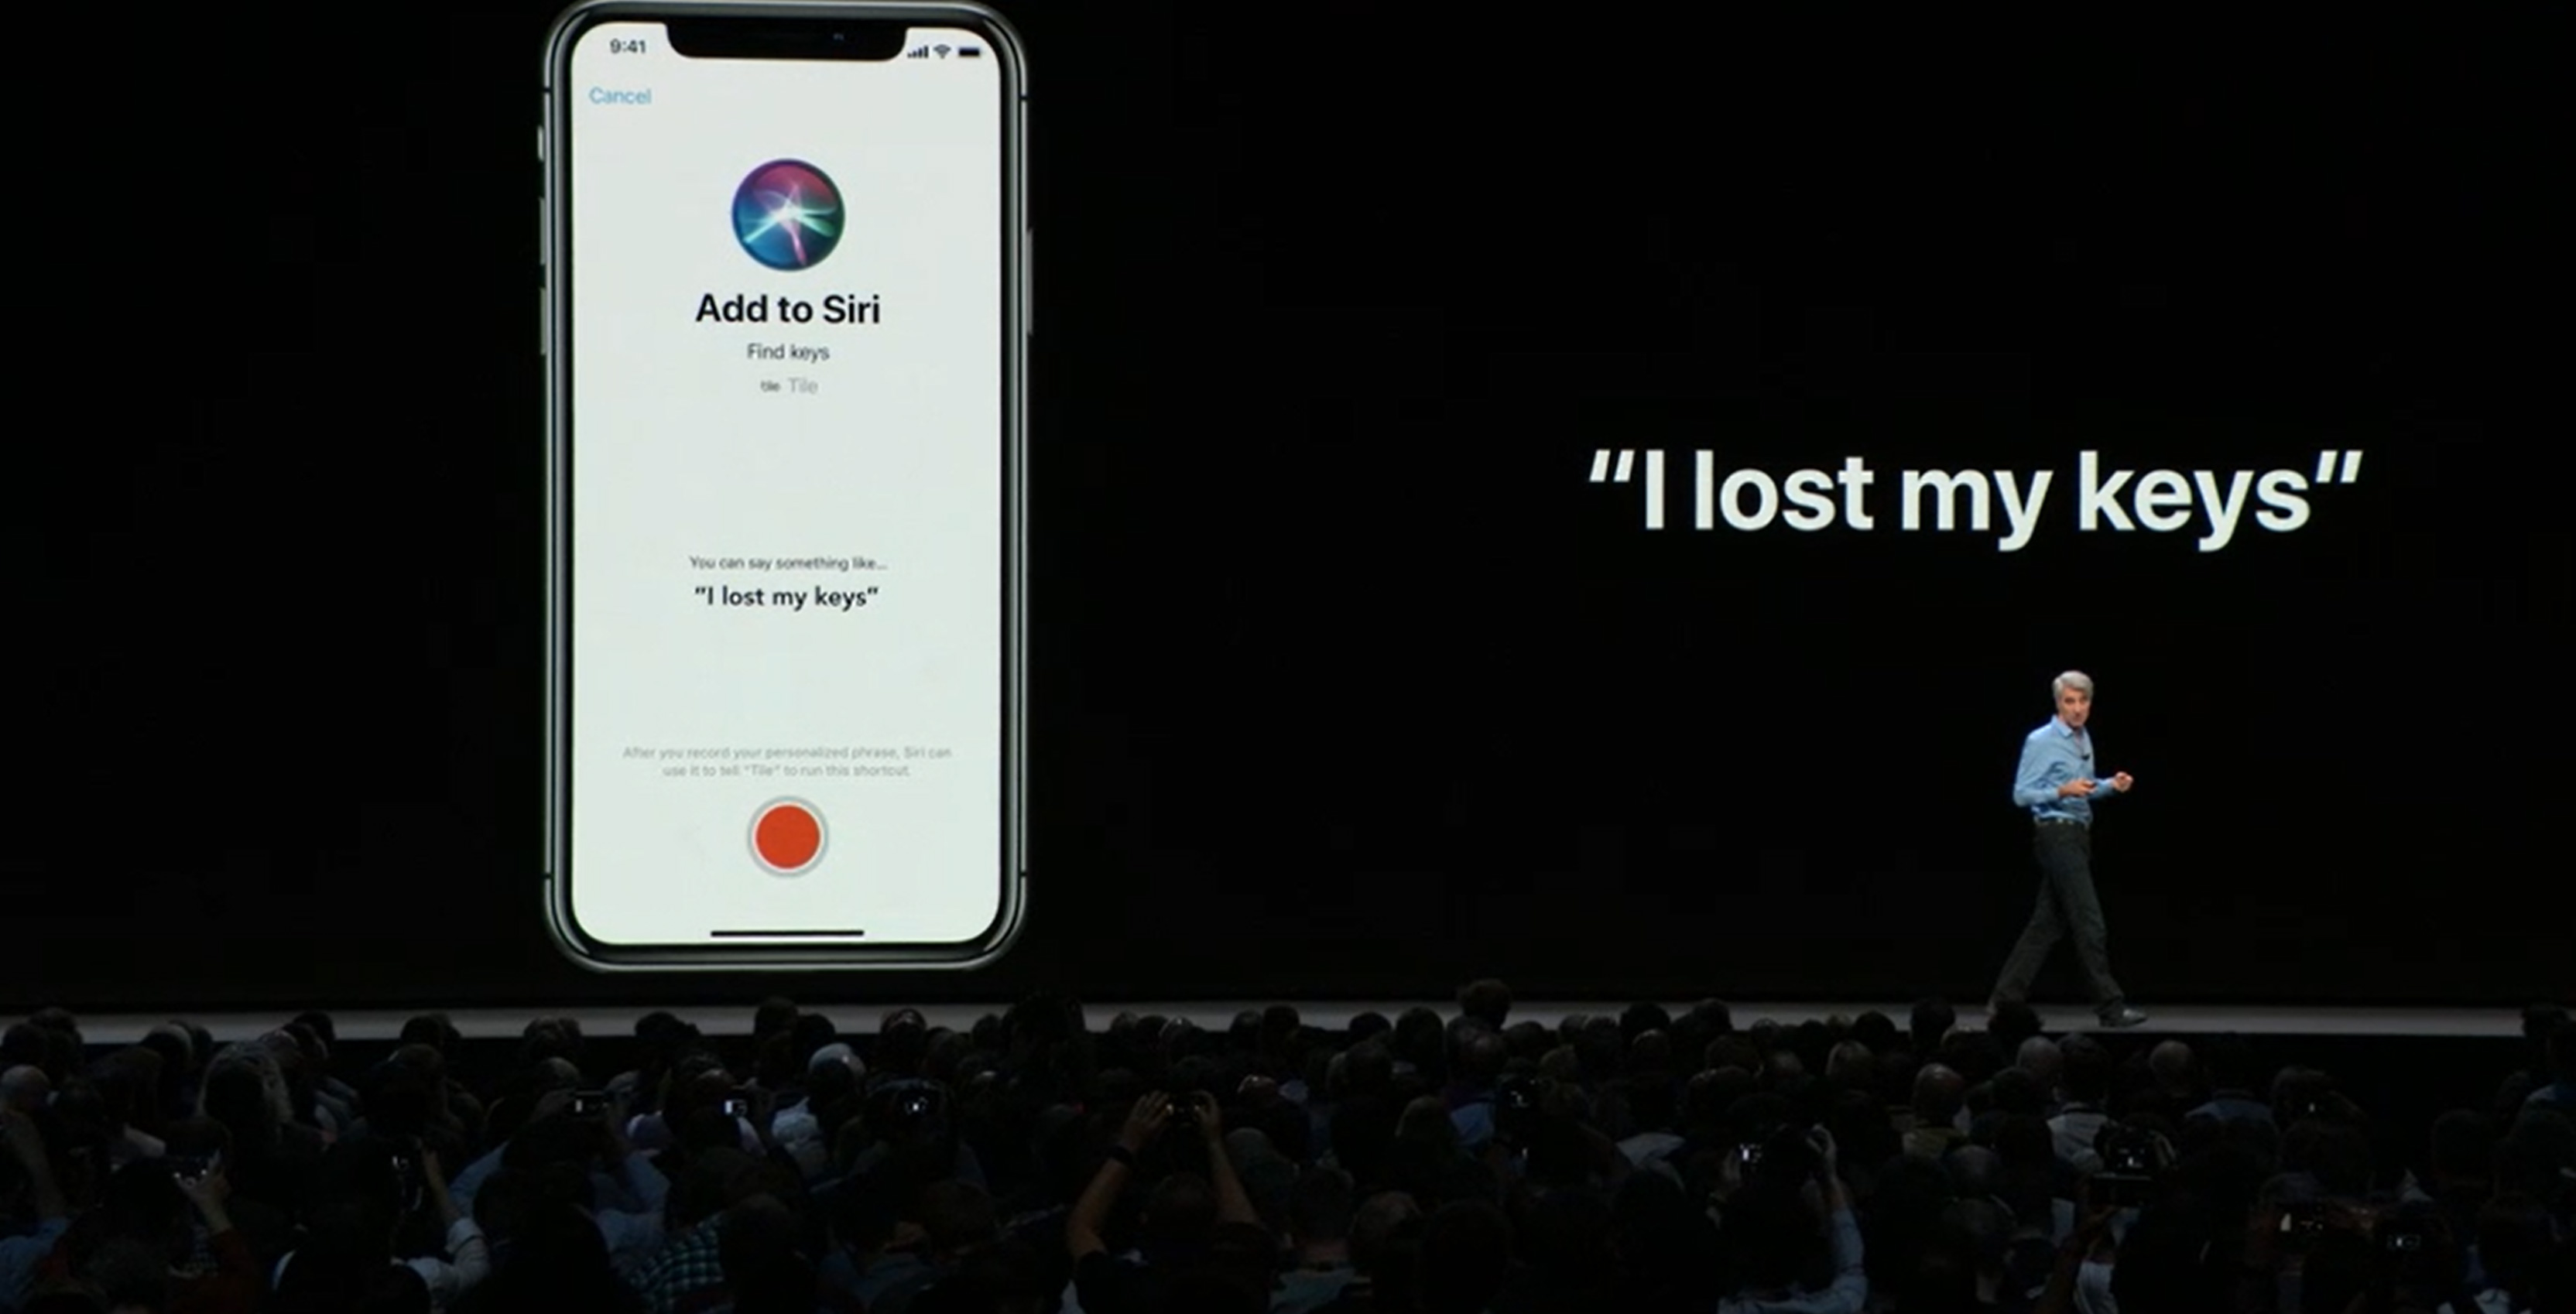 Apple announces Shortcuts, Suggestions for Siri at WWDC 2018